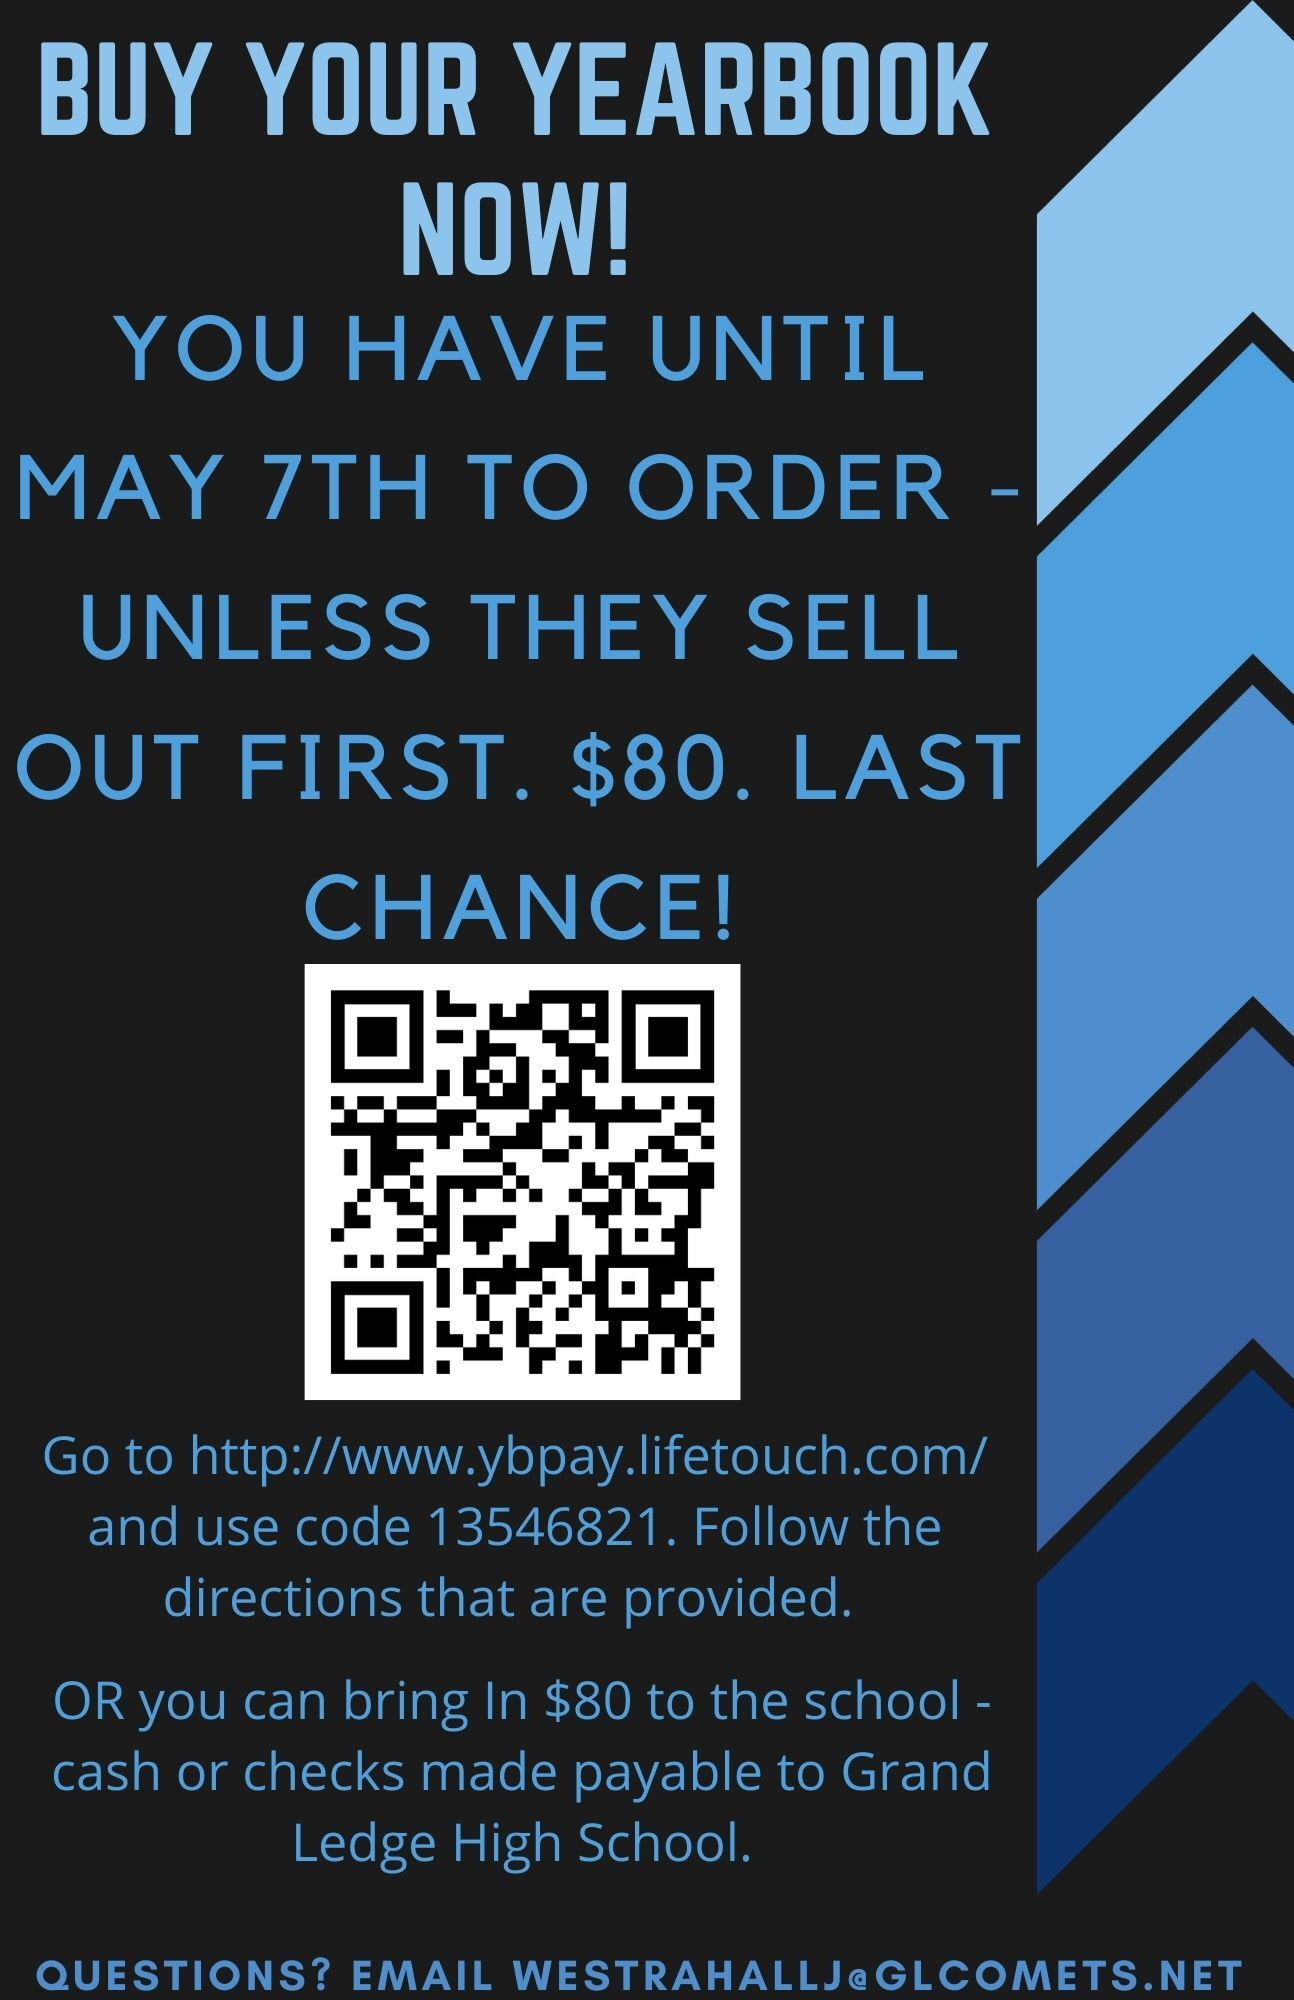 Last Day to order yearbooks is May 7th